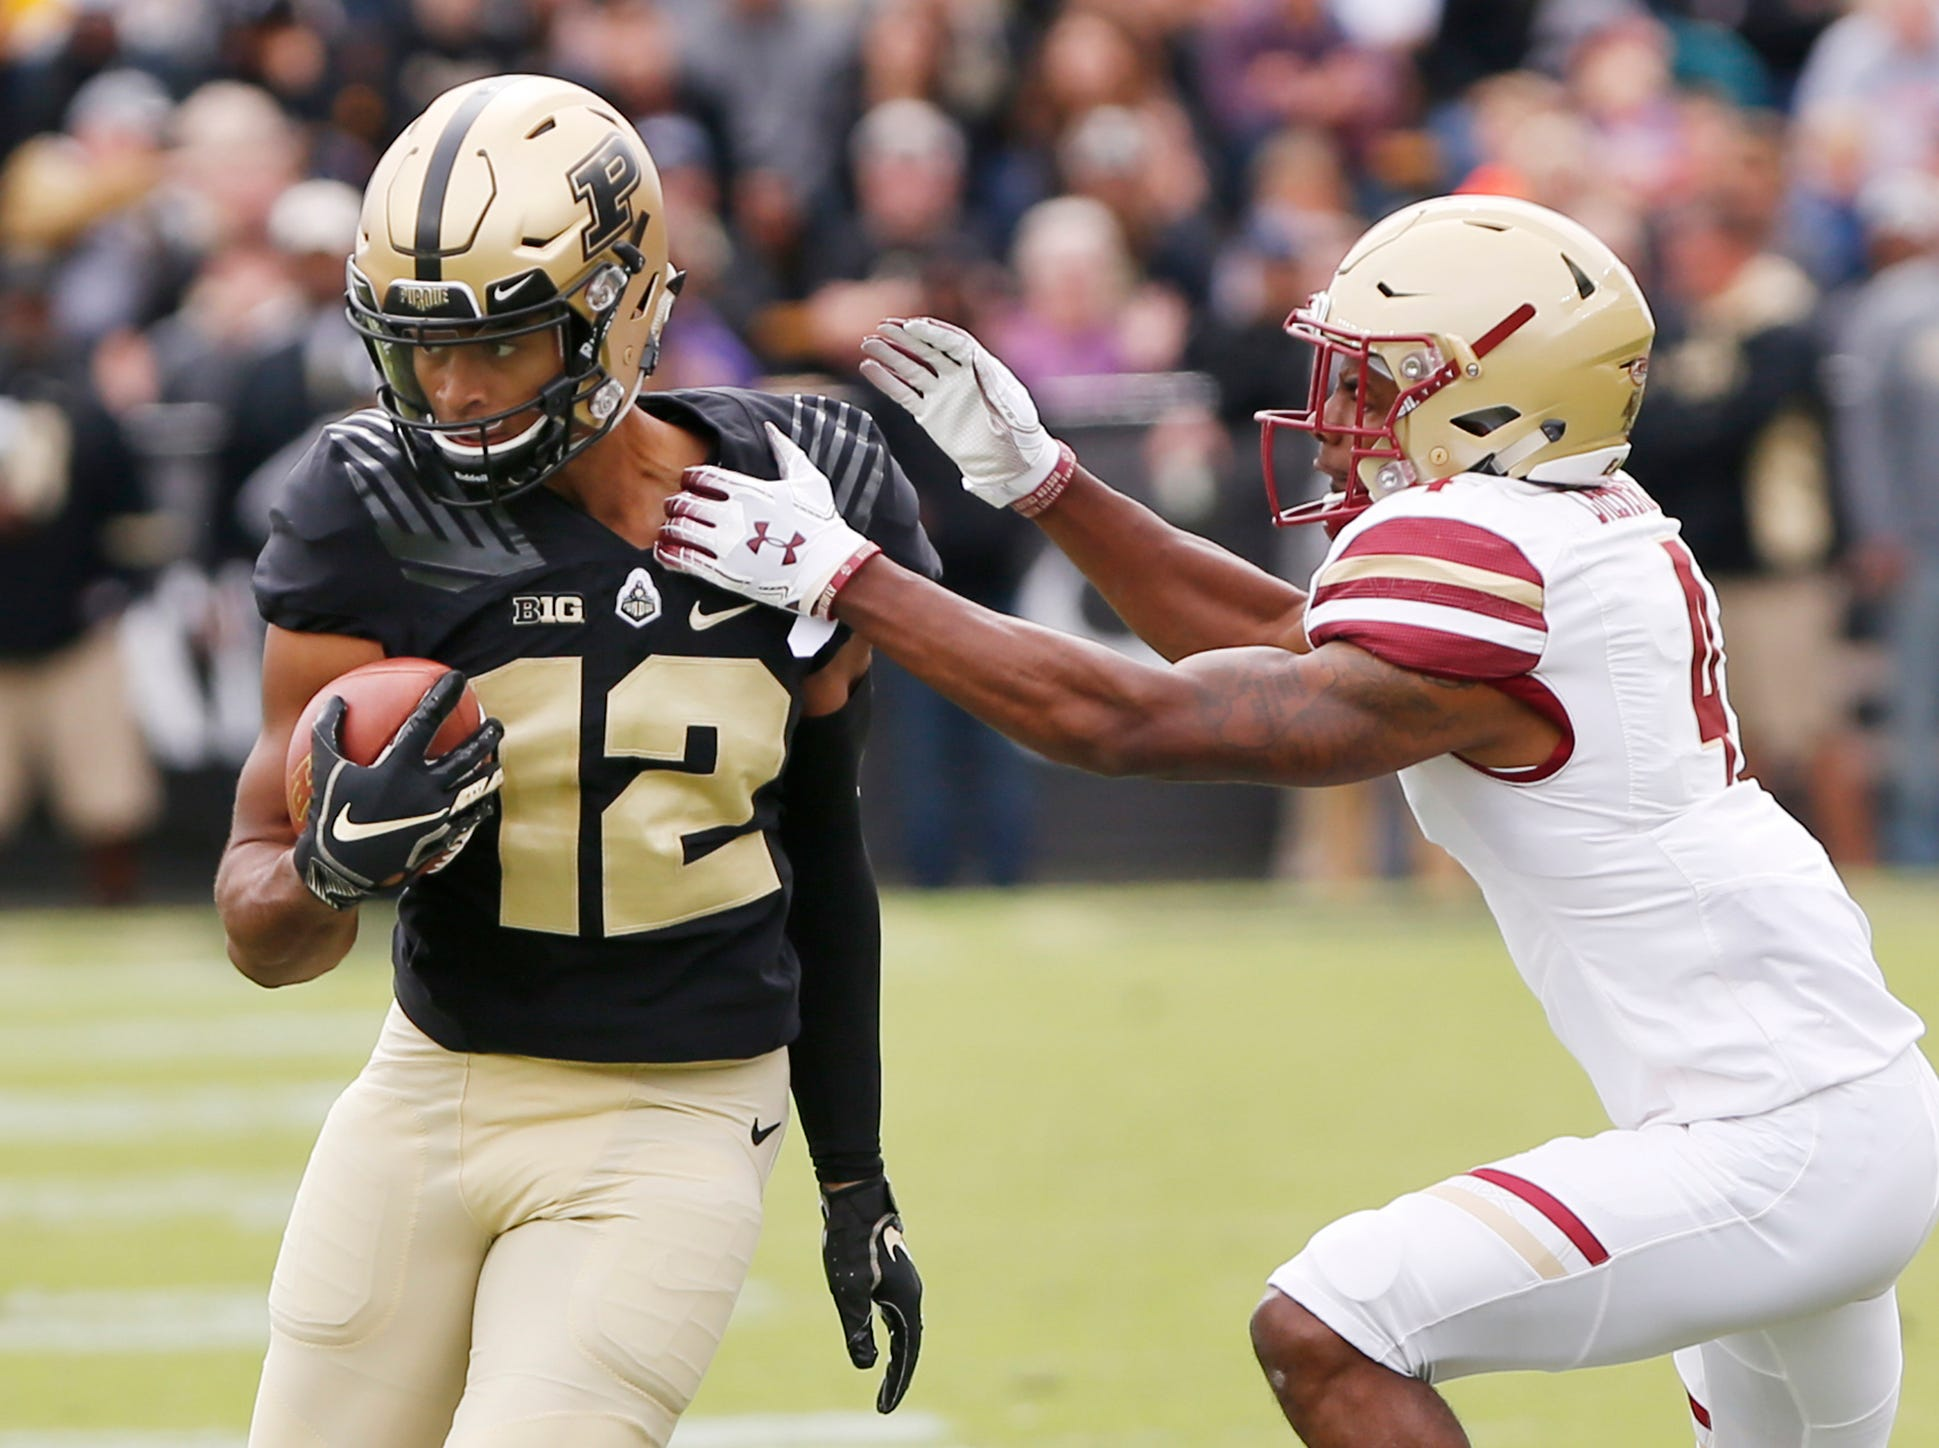 Jared Sparks of Purdue tries to spin free of Hamp Cheevers of Boston College after a pass reception Saturday, September 22, 2018, in Ross-Ade Stadium. Purdue defeated Boston College 30-13.